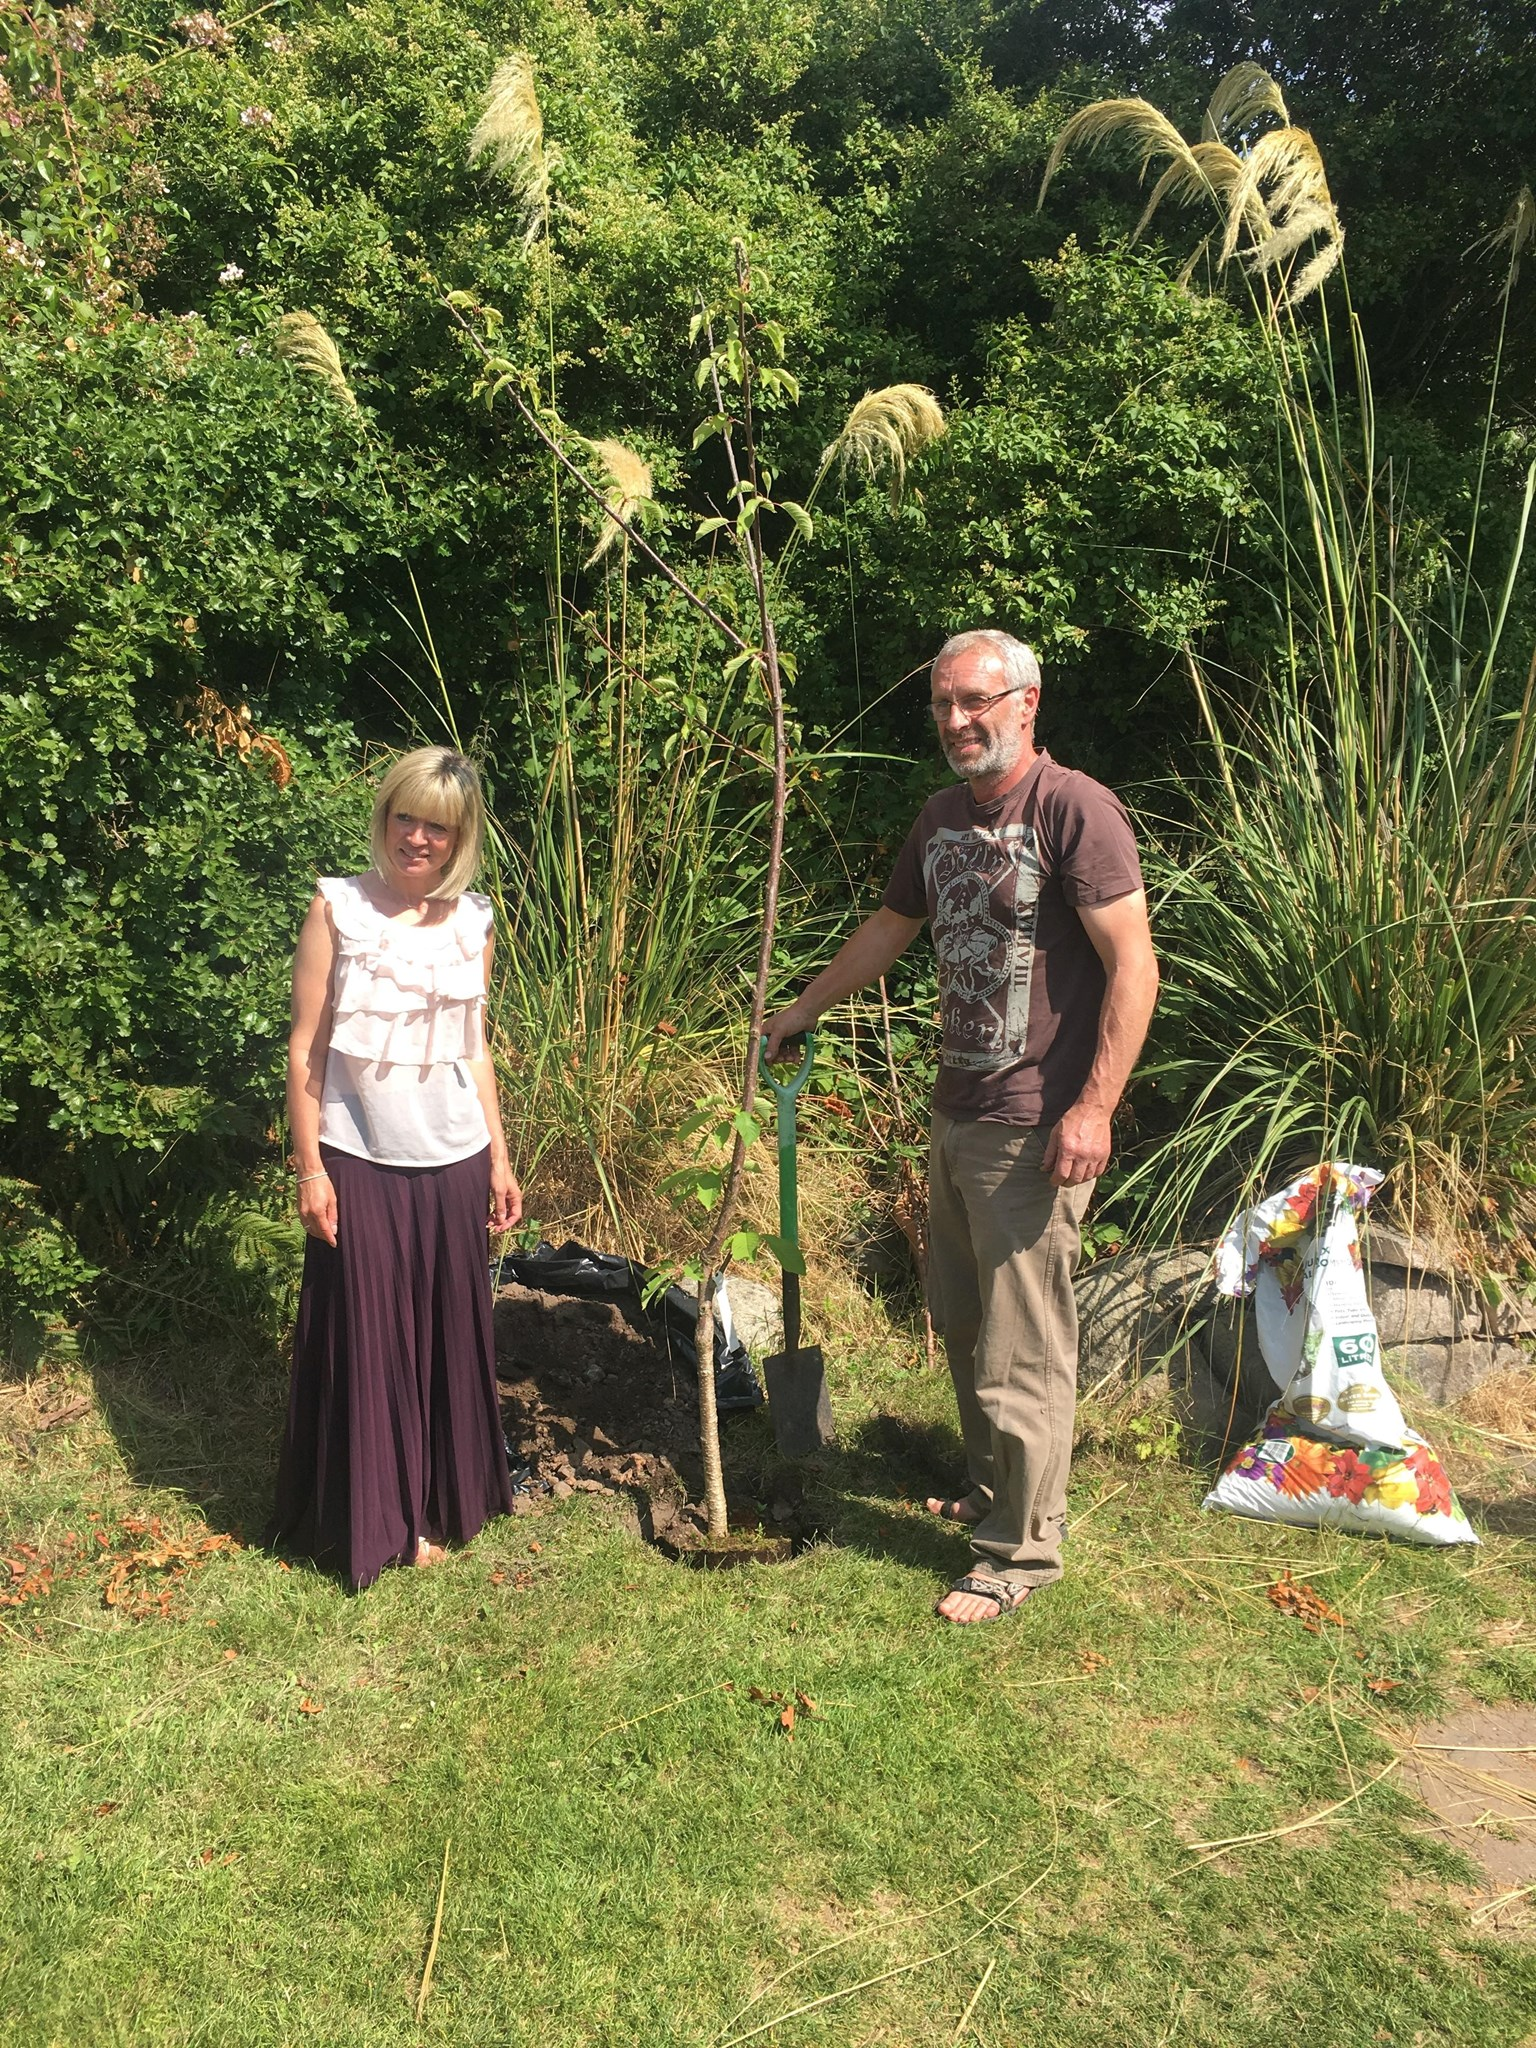 Mam & Dad planting the cherry tree